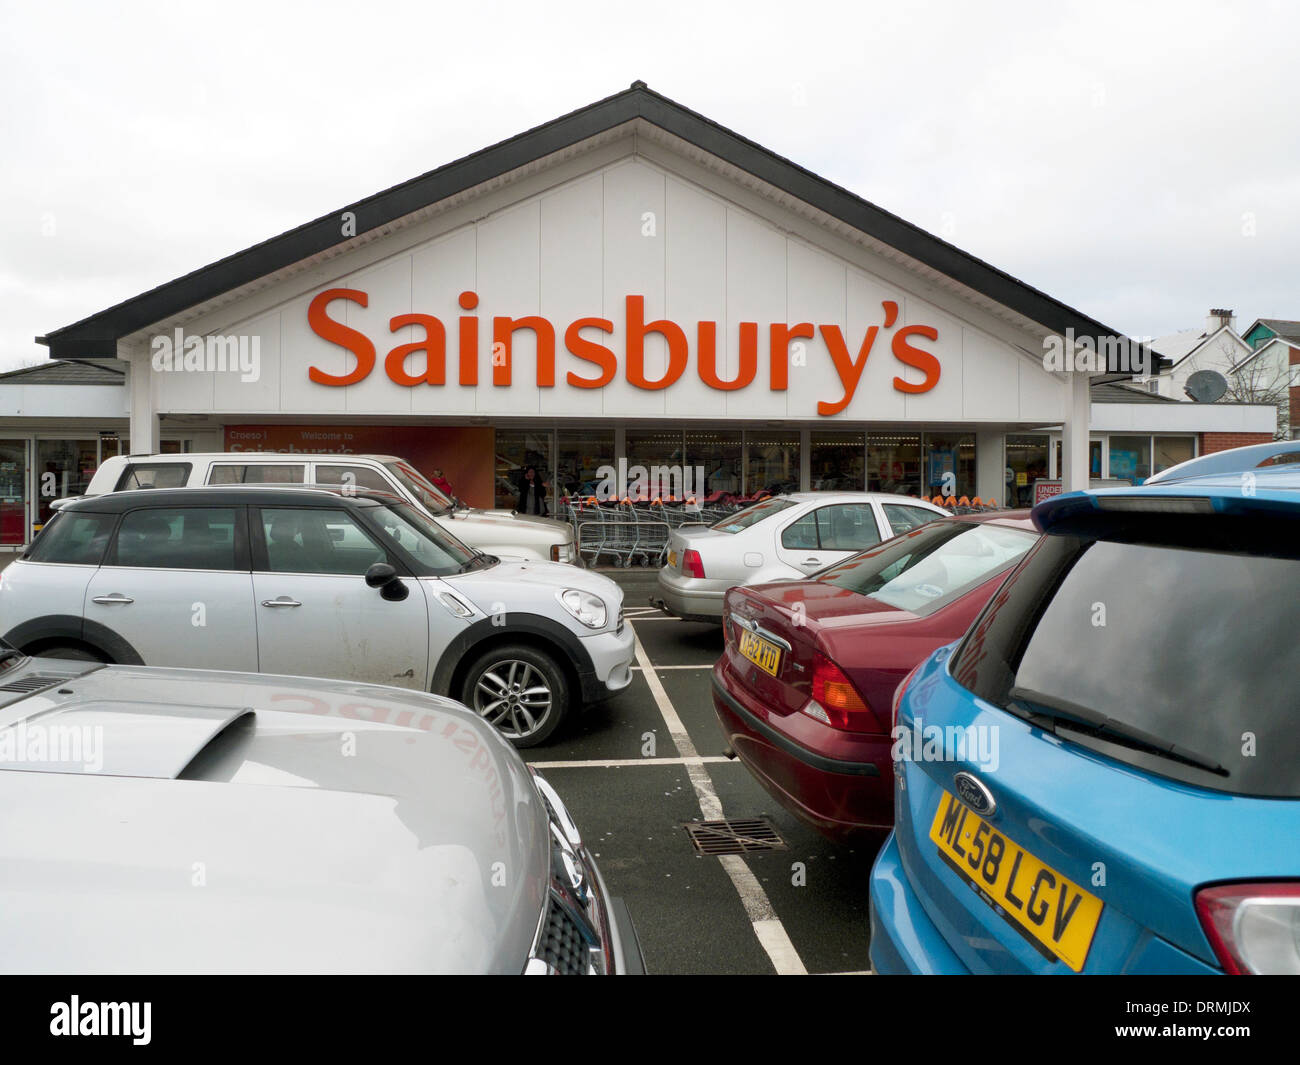 Exterior view of Sainsbury's supermarket sign and cars in car park parking lot Lampeter Wales UK  KATHY DEWITT - Stock Image